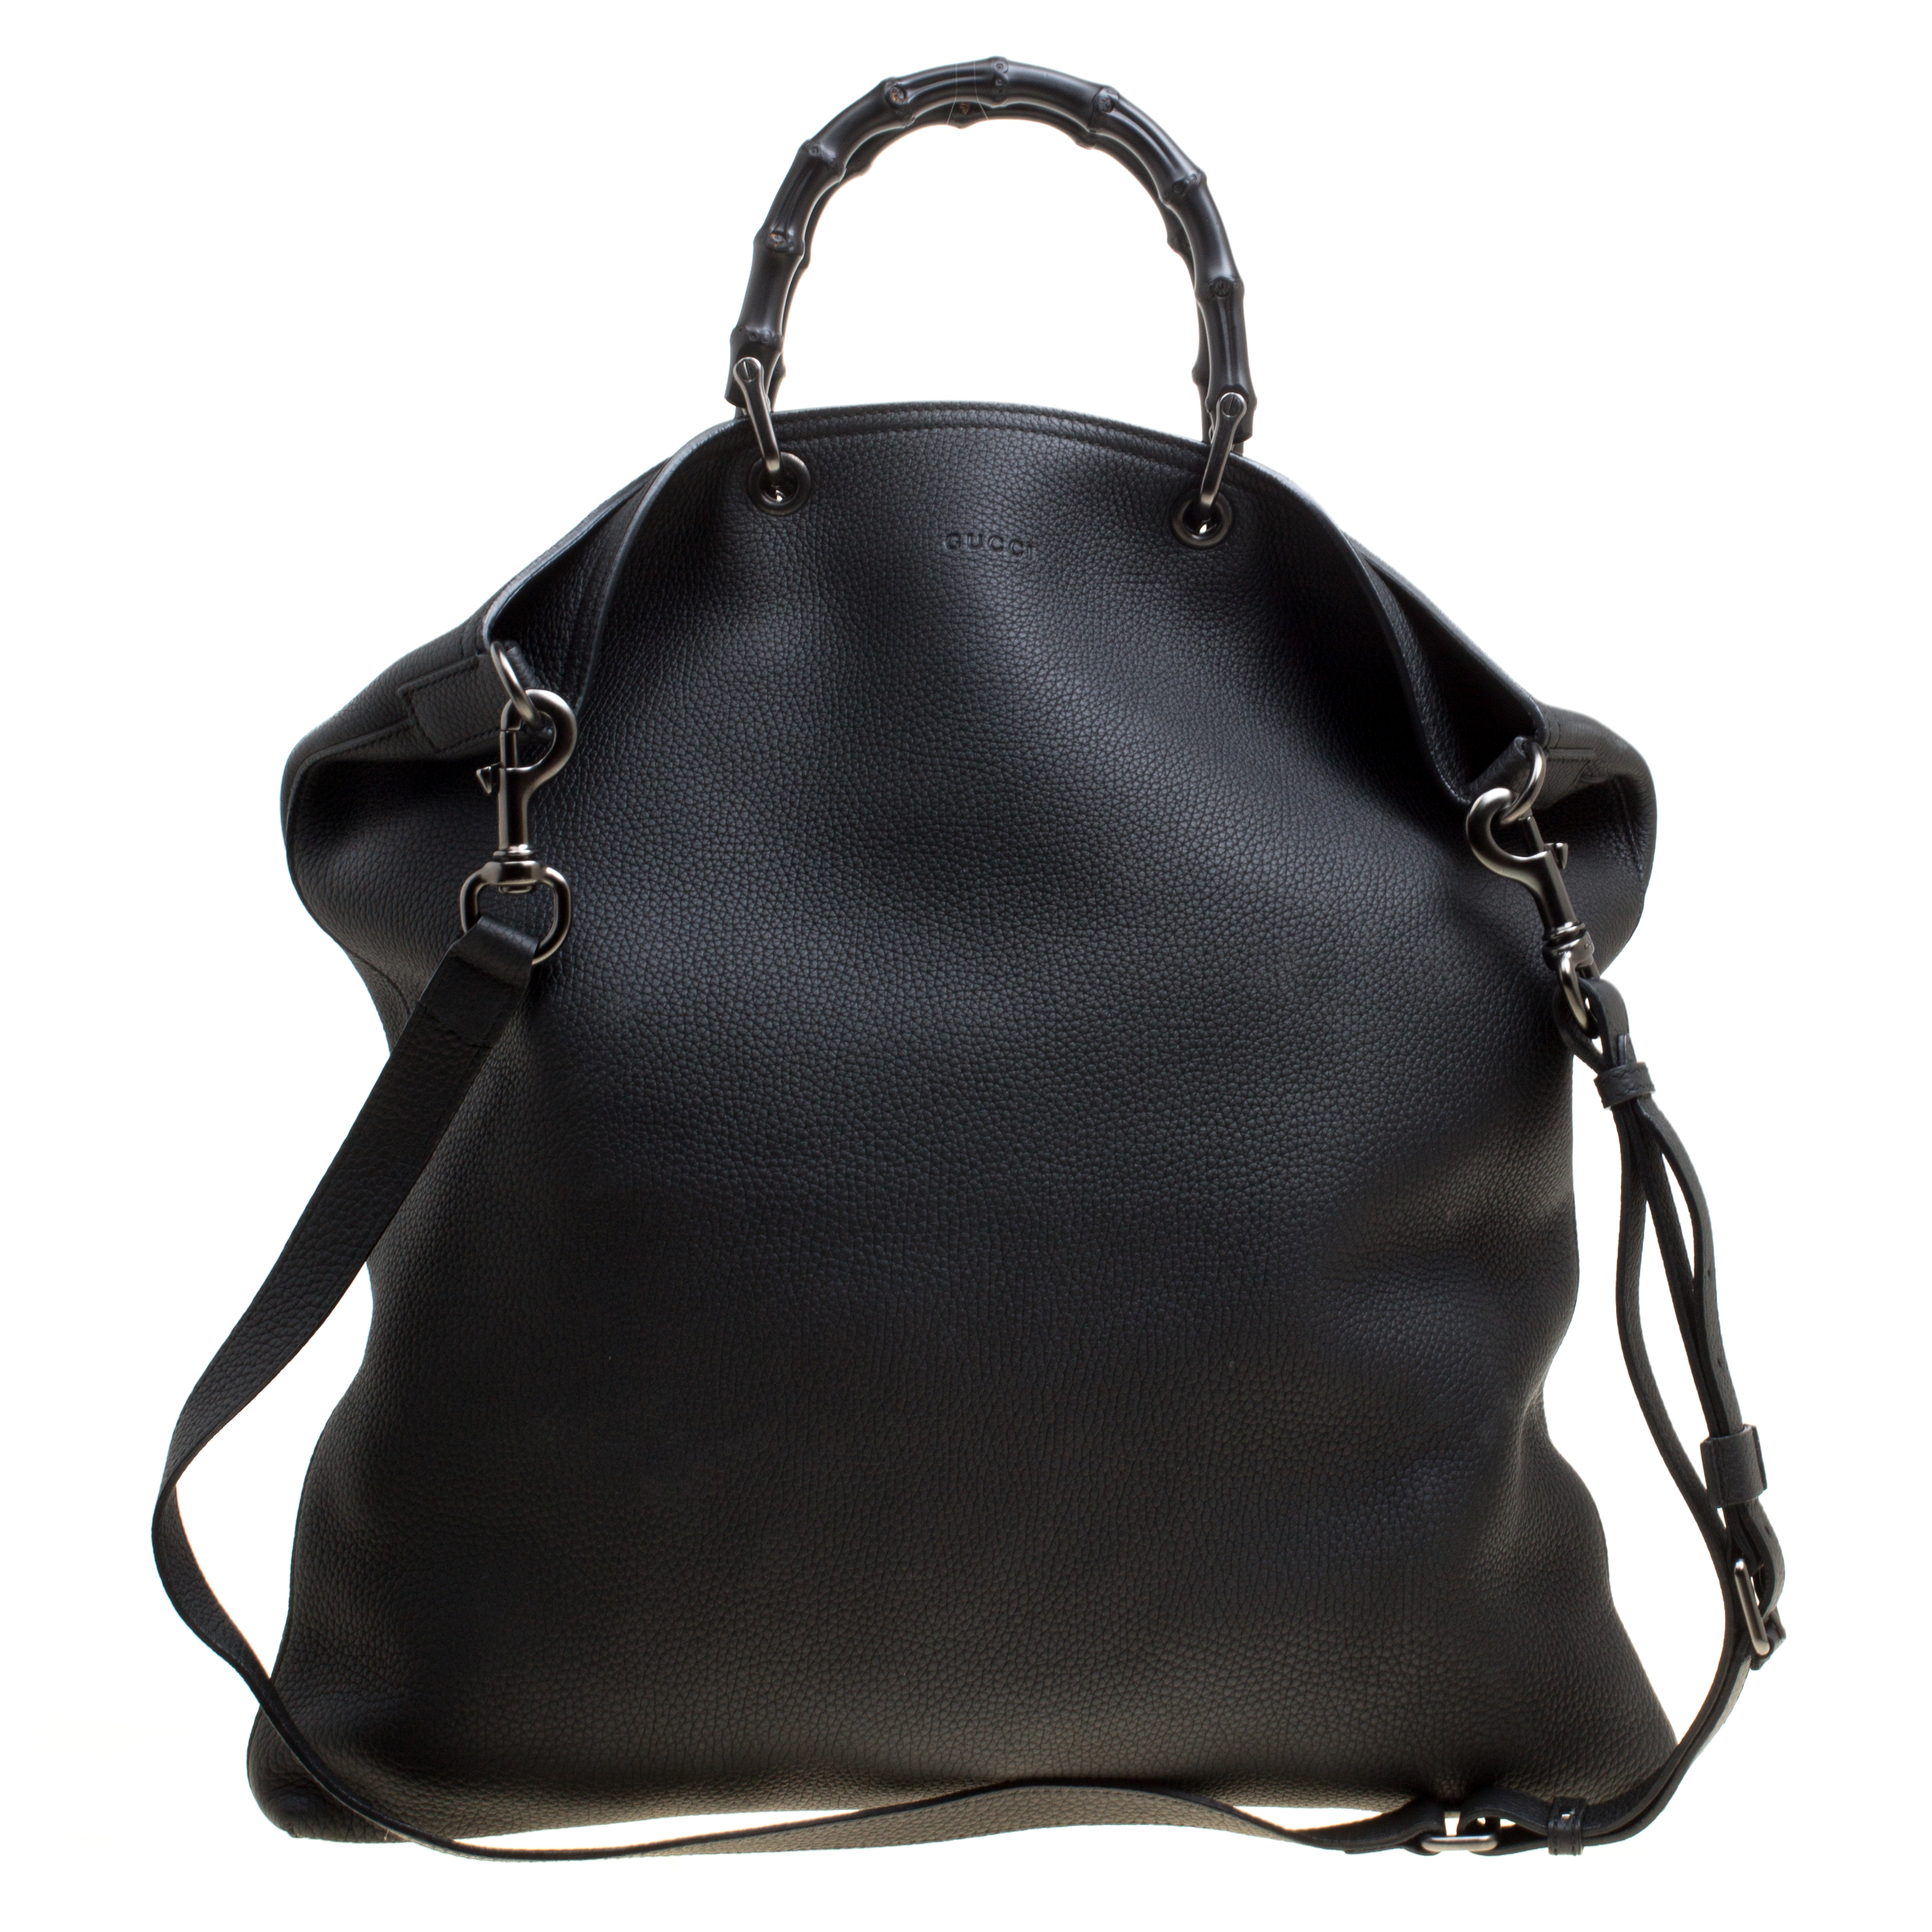 8e31d355b Buy Gucci Black Leather Bamboo Top Handle Bag 156873 at best price   TLC